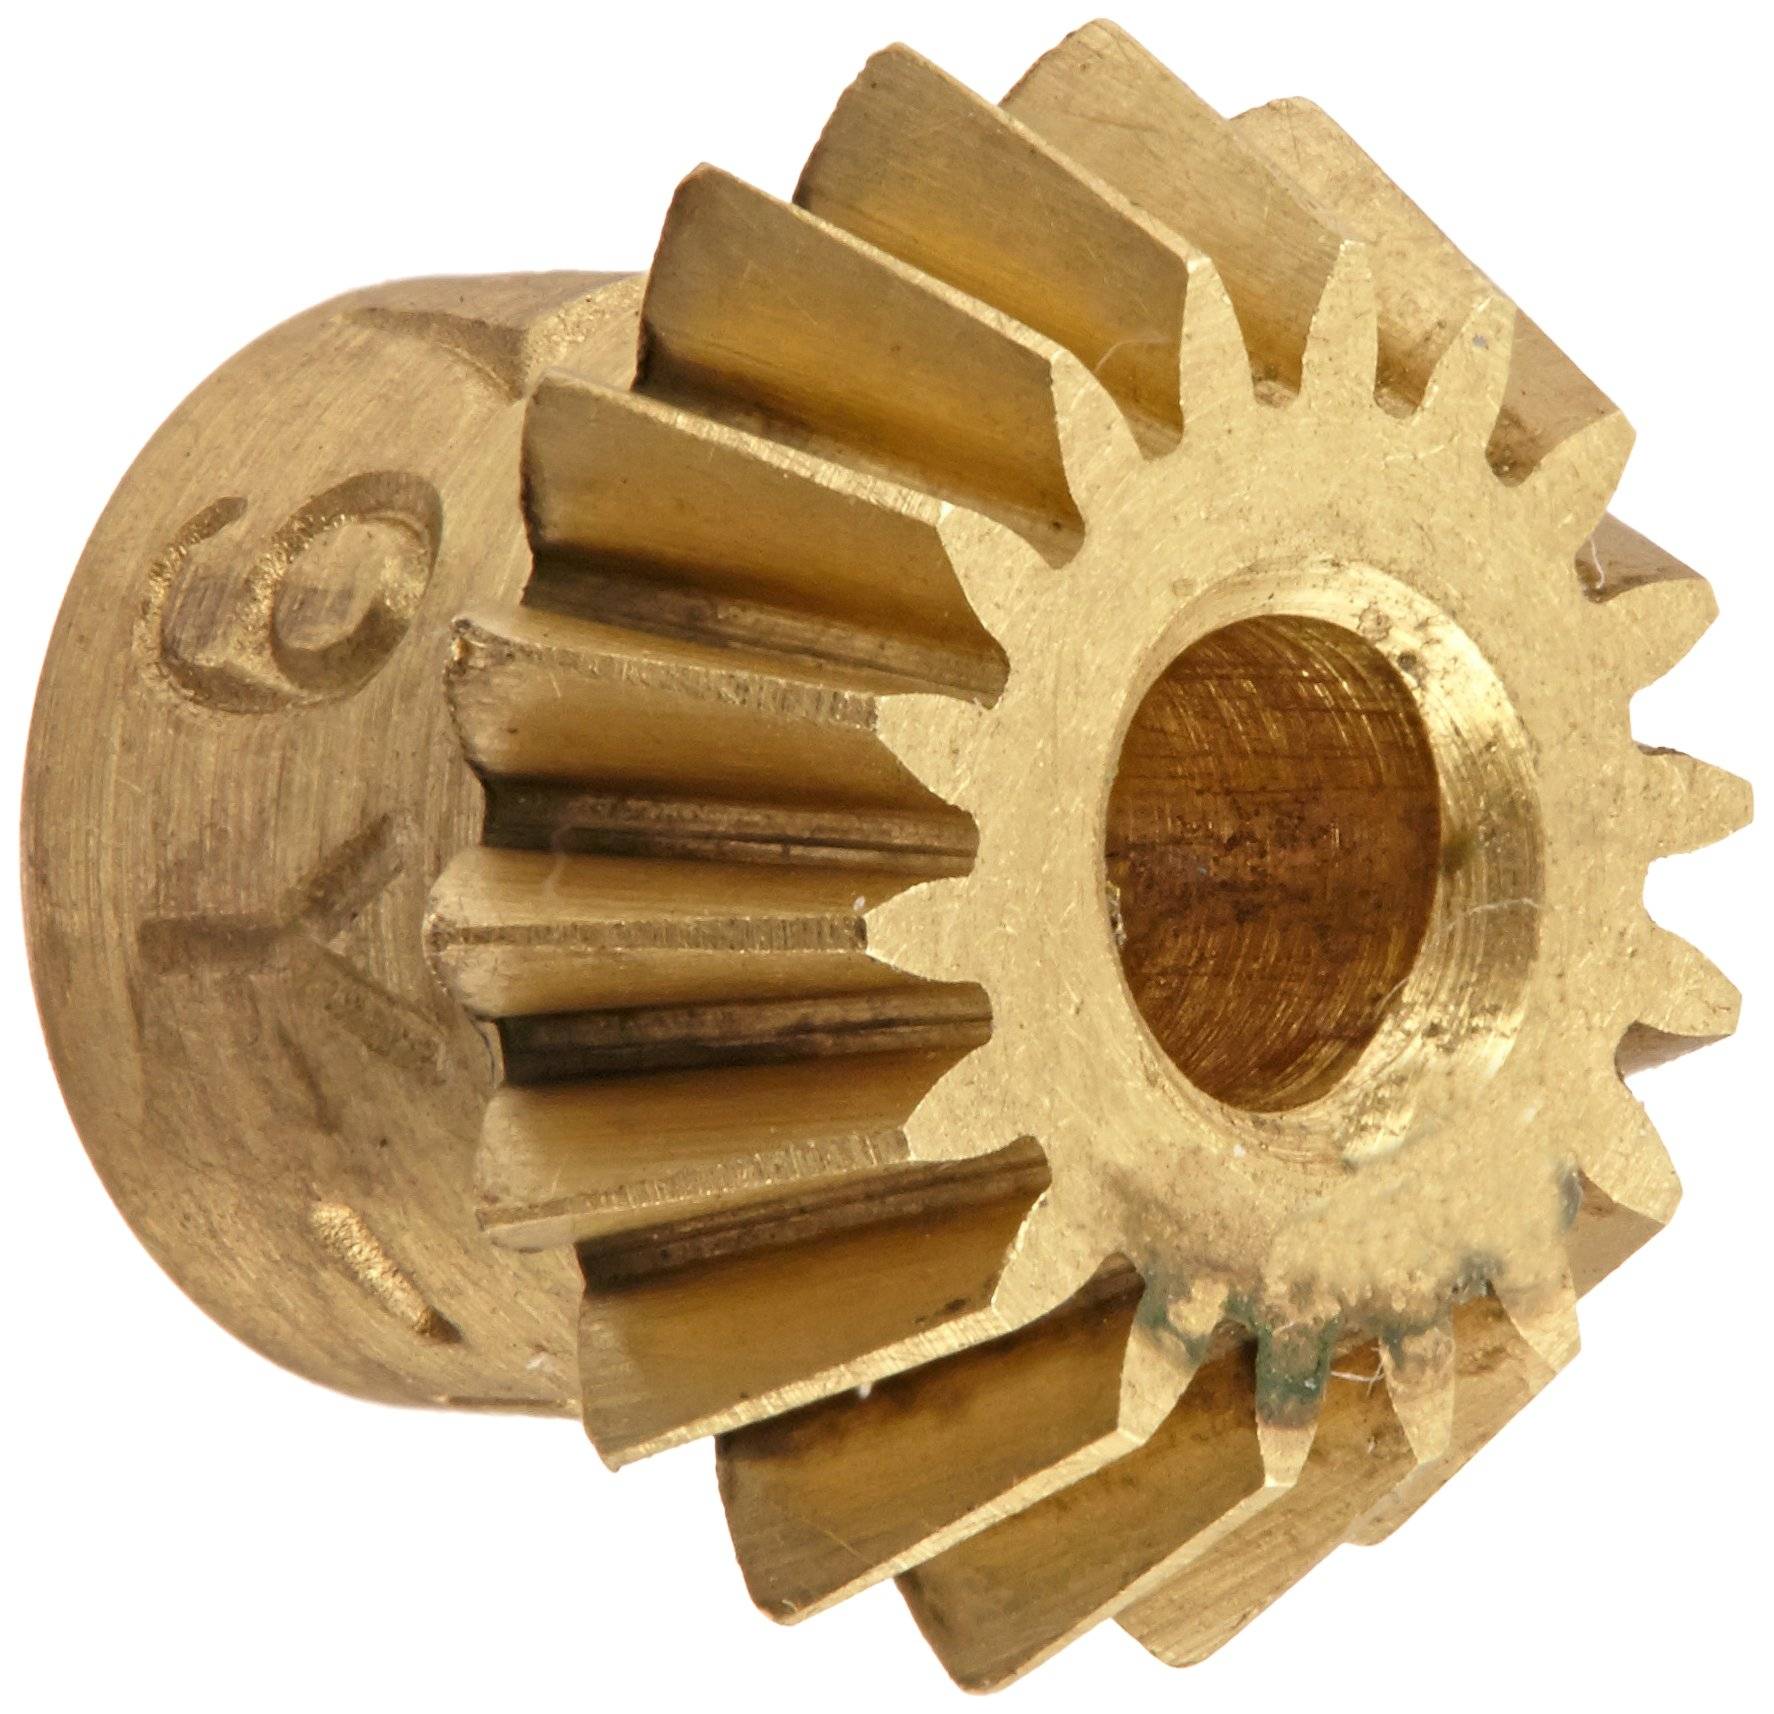 "Boston Gear G479Y-P Bevel Pinion Gear, 2:1 Ratio, 0.125"" Bore, 48 Pitch, 18 Teeth, 20 Degree Pressure Angle, Straight Bevel, Keyway, Brass"